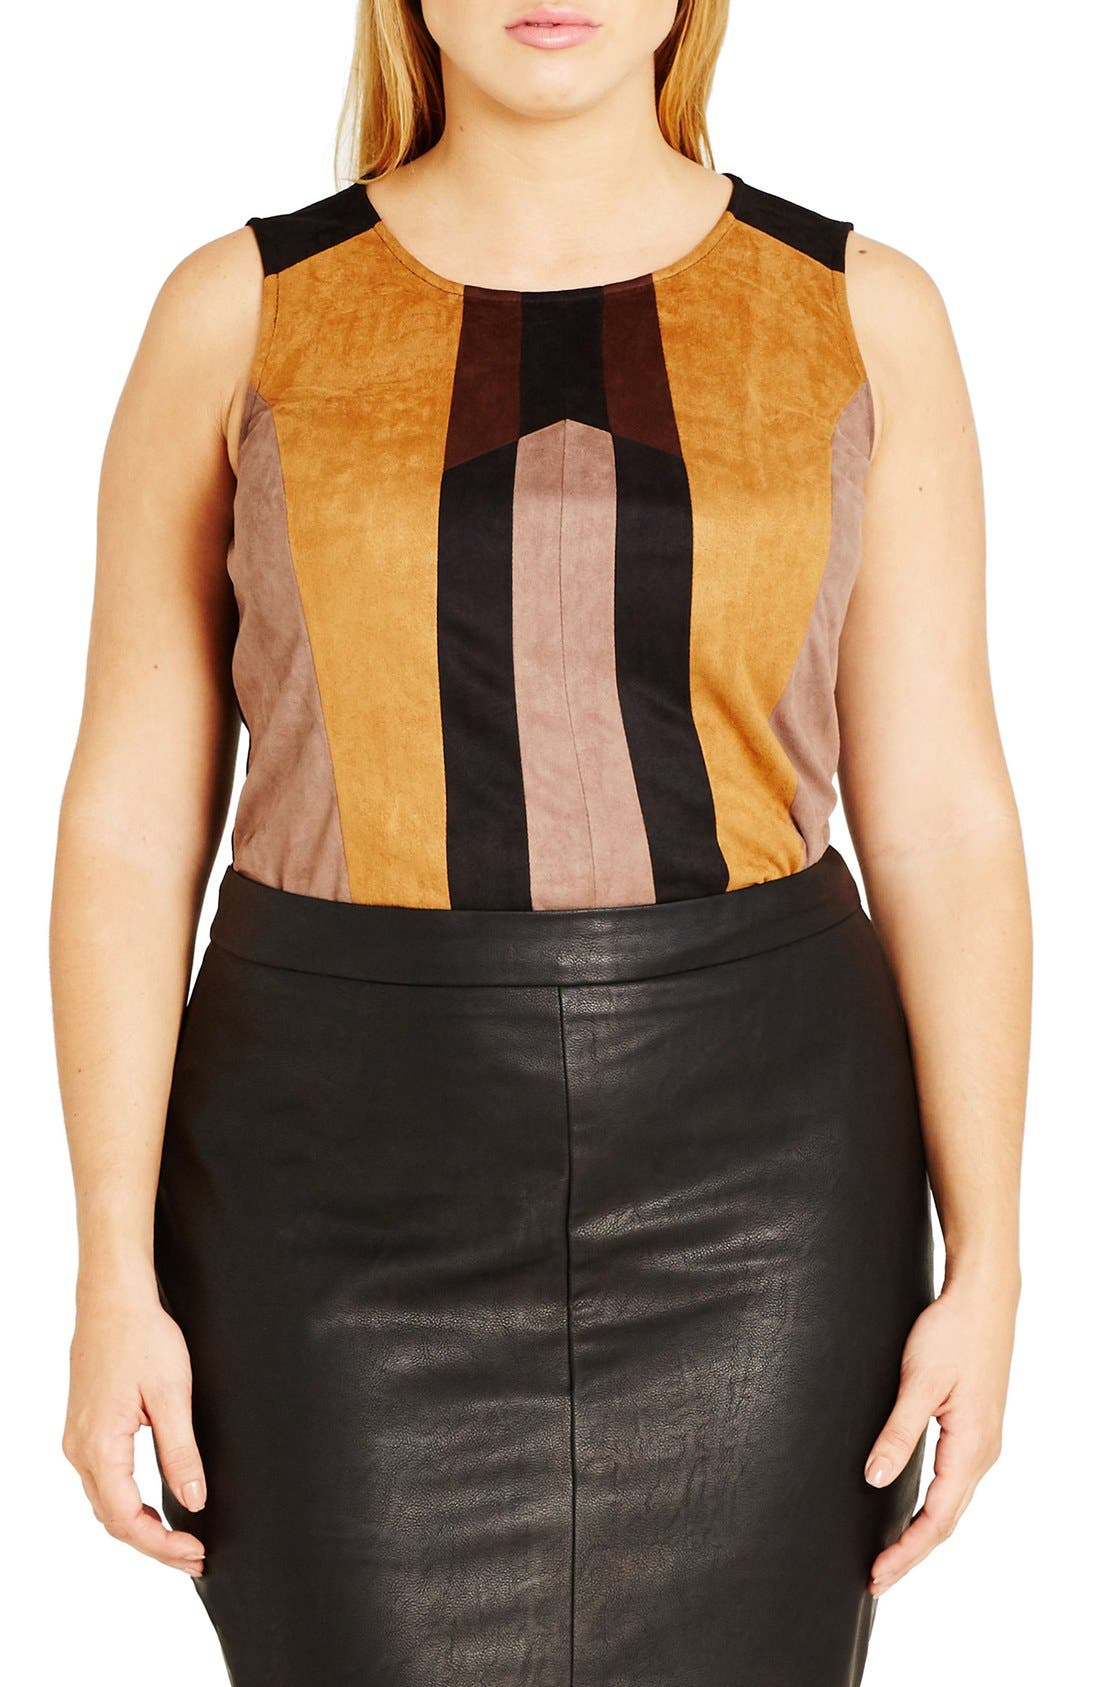 Alternate Image 1 Selected - City Chic Patchwork Faux Suede Front Crop Top (Plus Size)